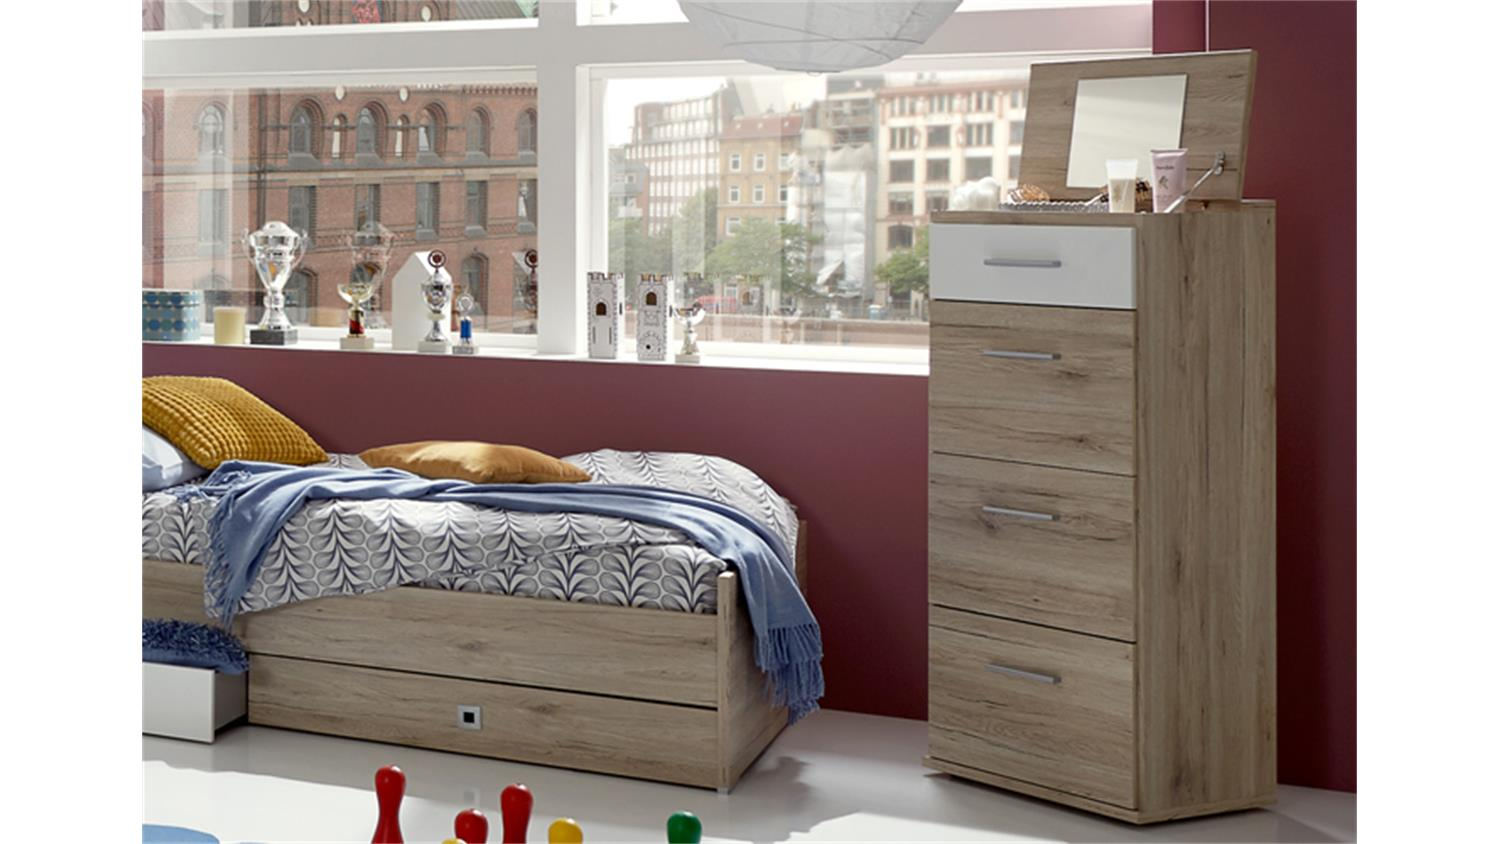 jugend m dchenzimmer mit begehbaren kleiderschrank. Black Bedroom Furniture Sets. Home Design Ideas